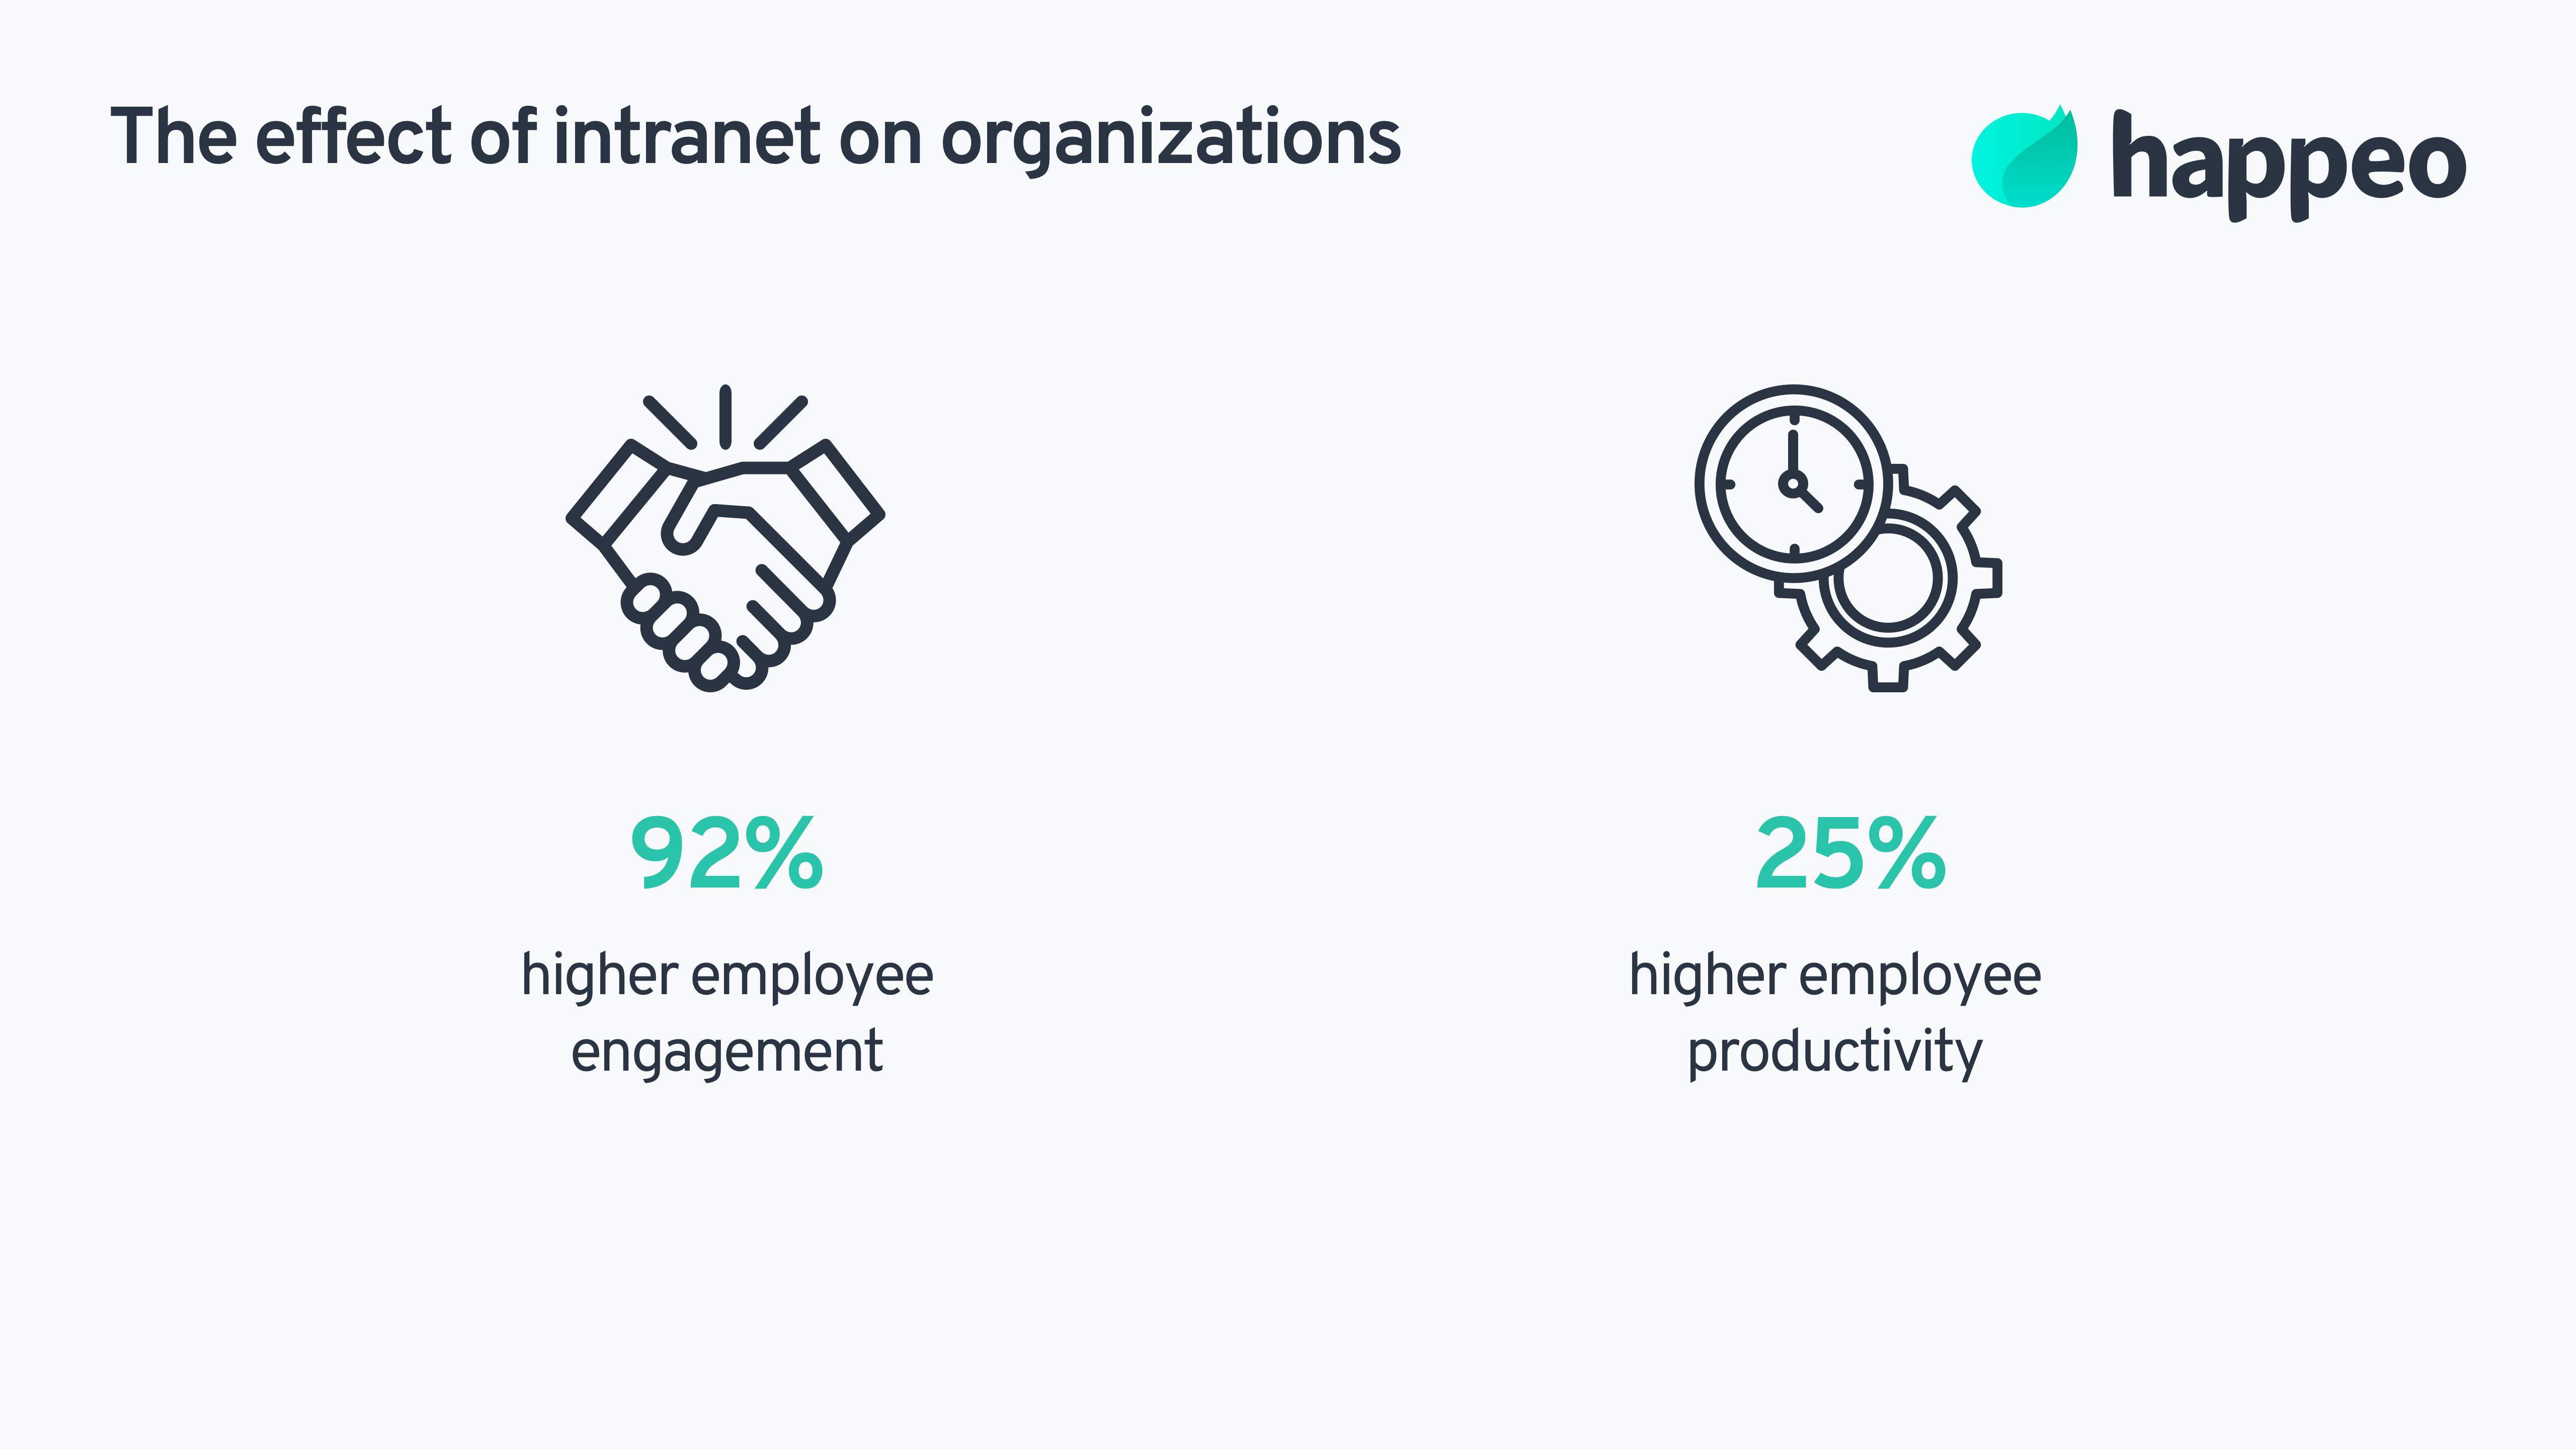 Effect of intranet on organizations